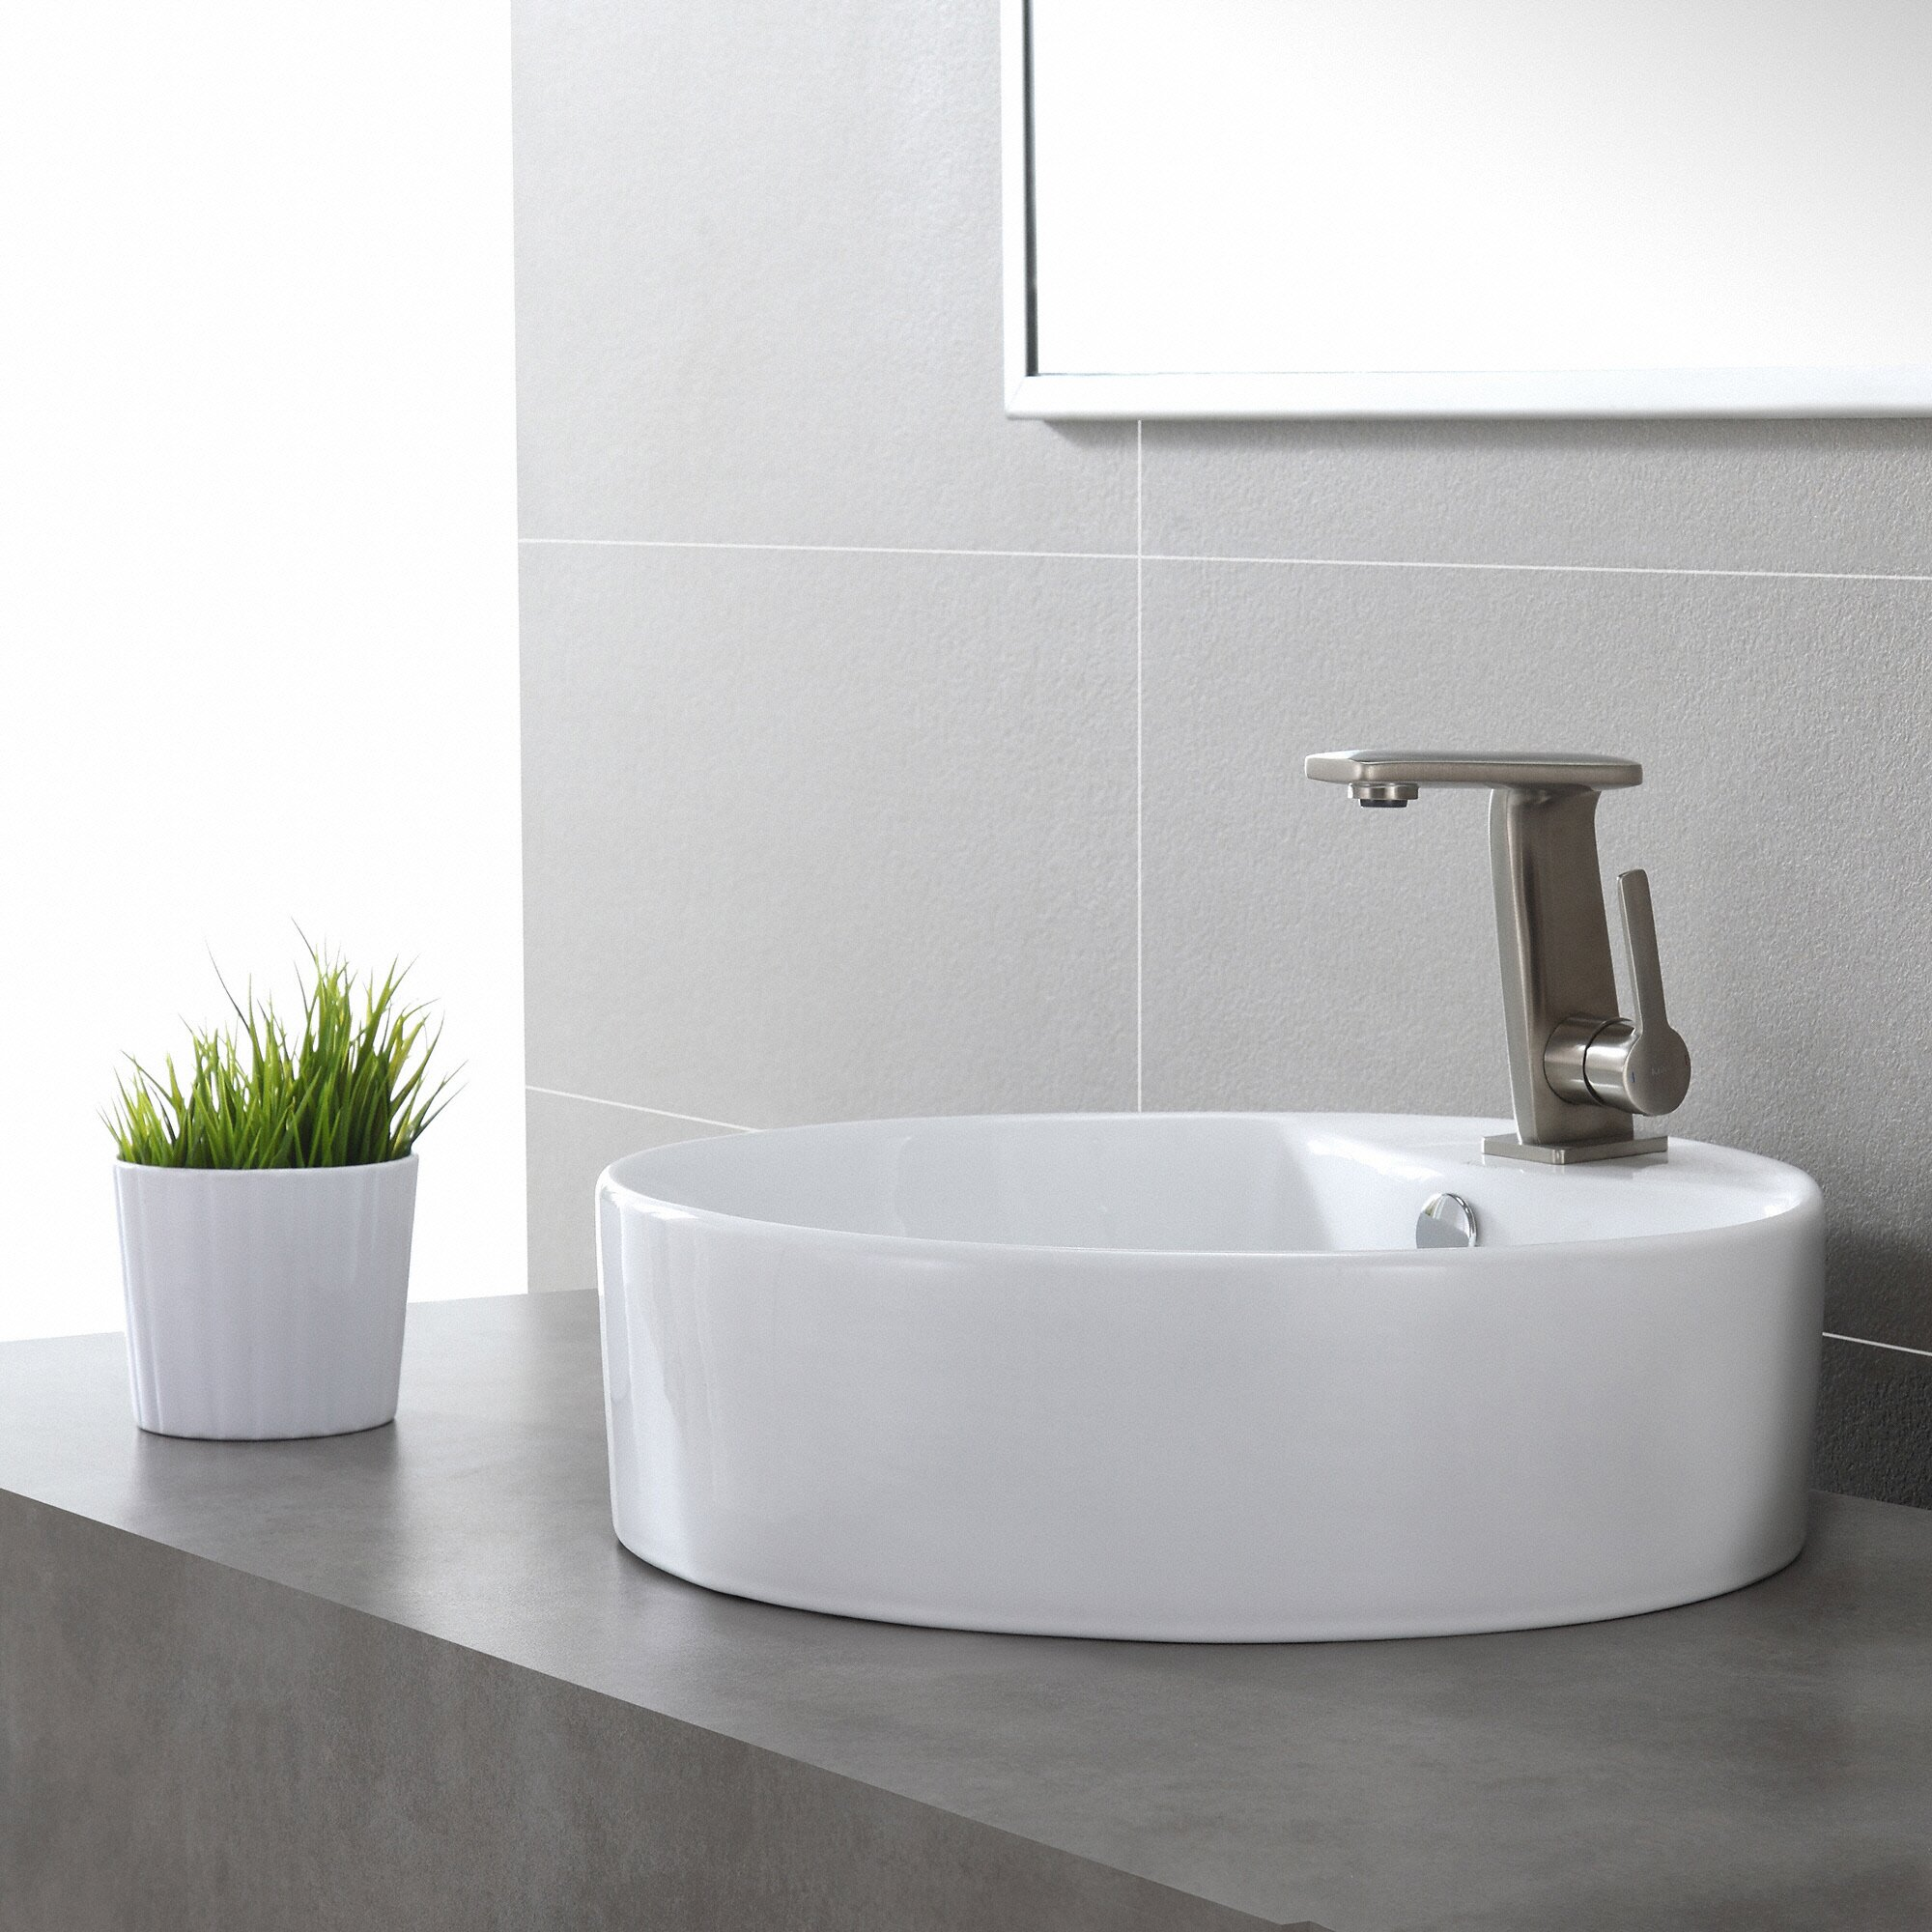 Kraus Ceramic Round Sink & Reviews Wayfair